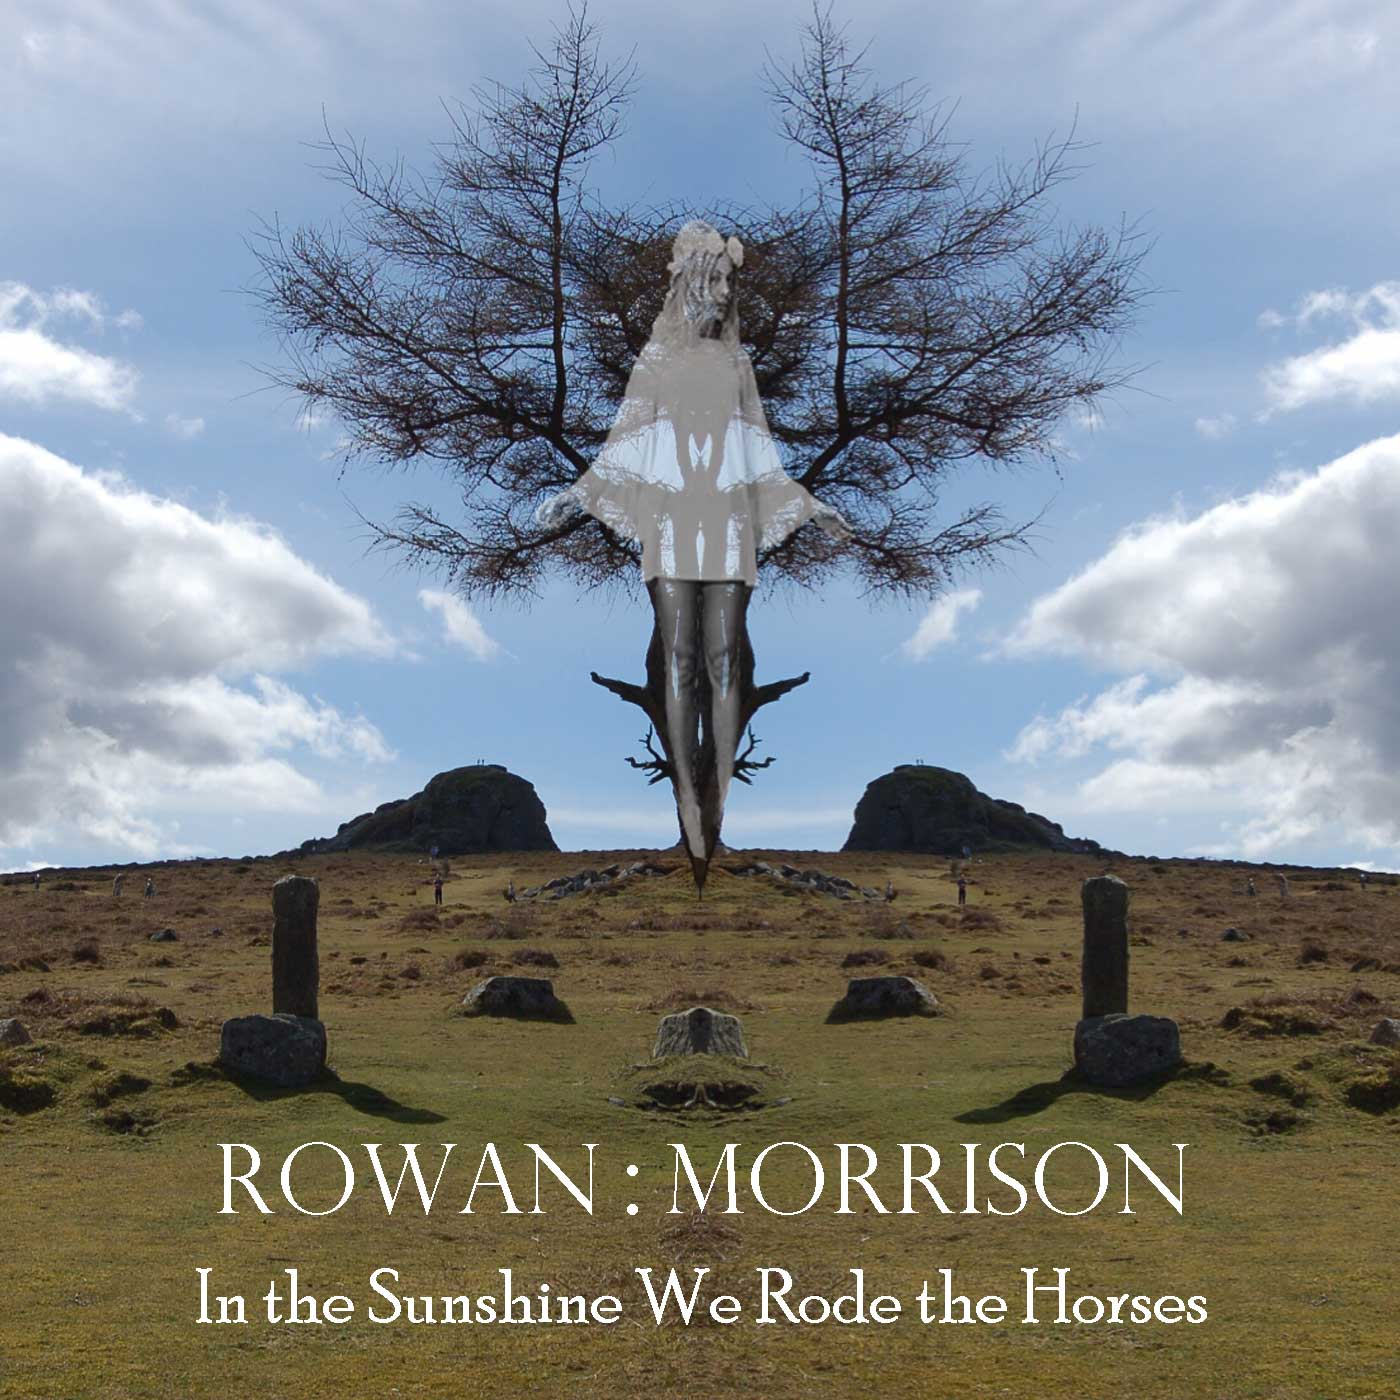 In the Sunshine We Rode the Horses by Rowan : Morrison